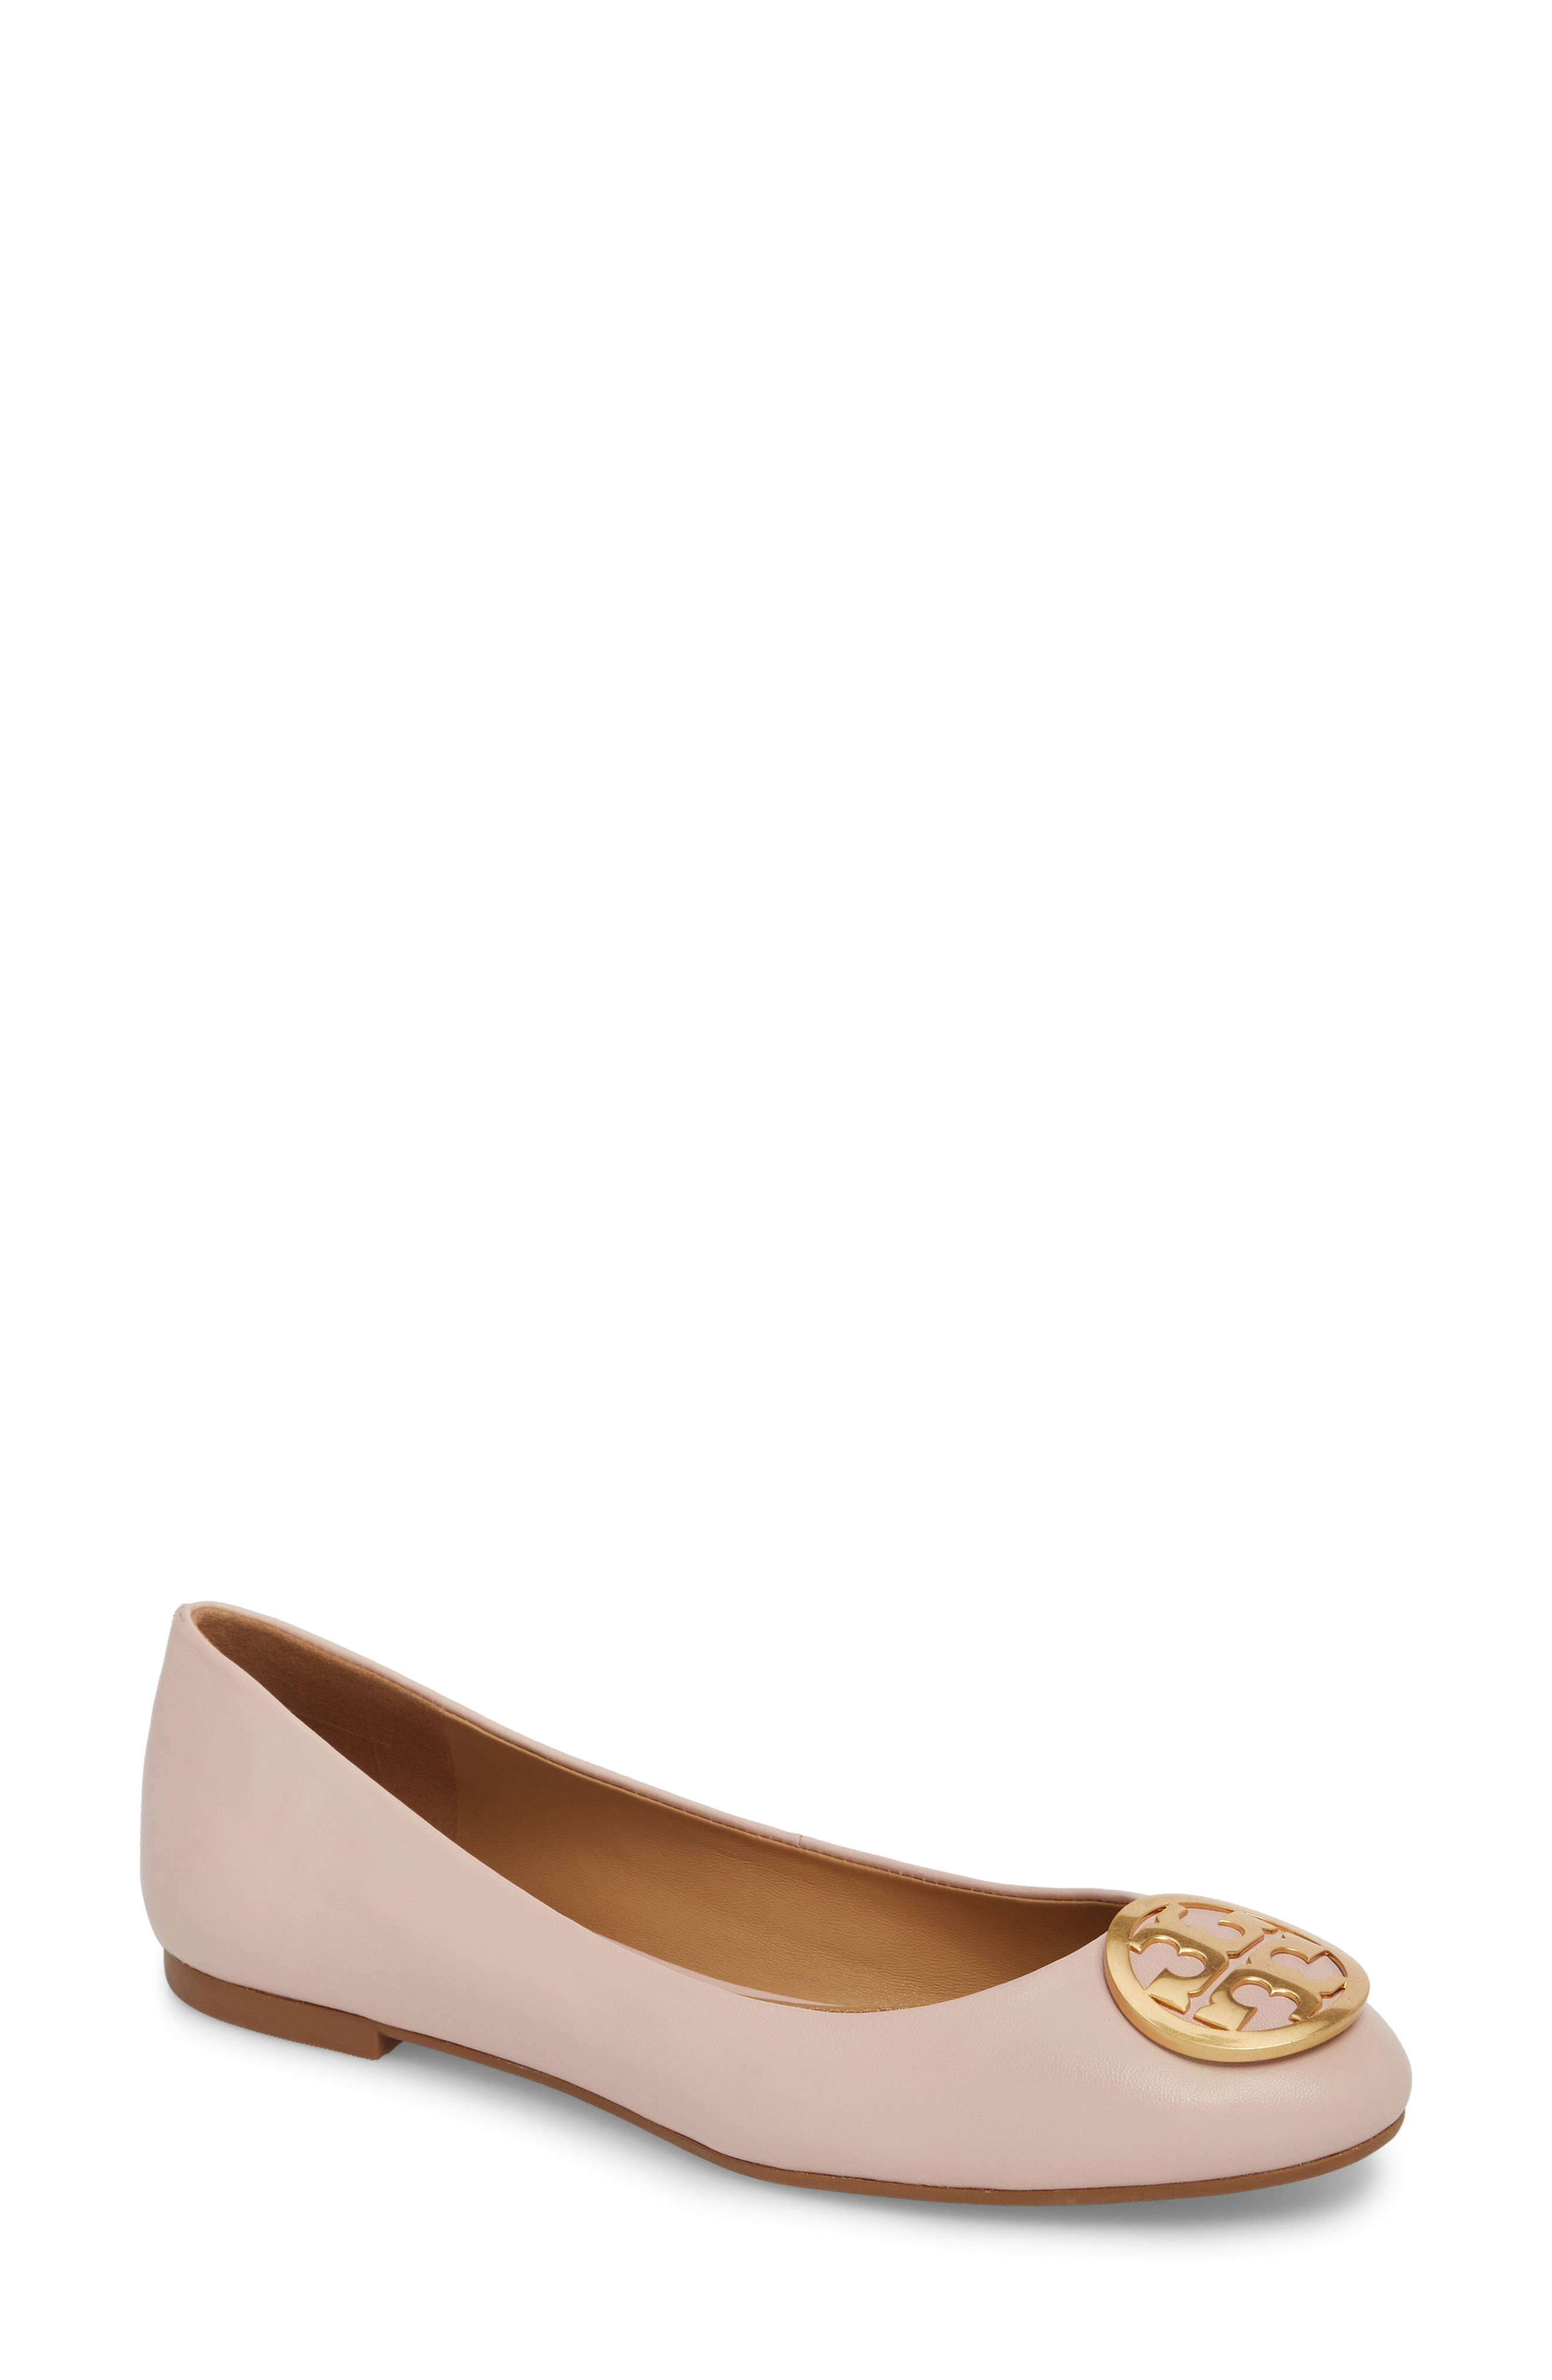 7febec28e51 tory burch benton ballet flat - Later Ever After - A Chicago Based ...